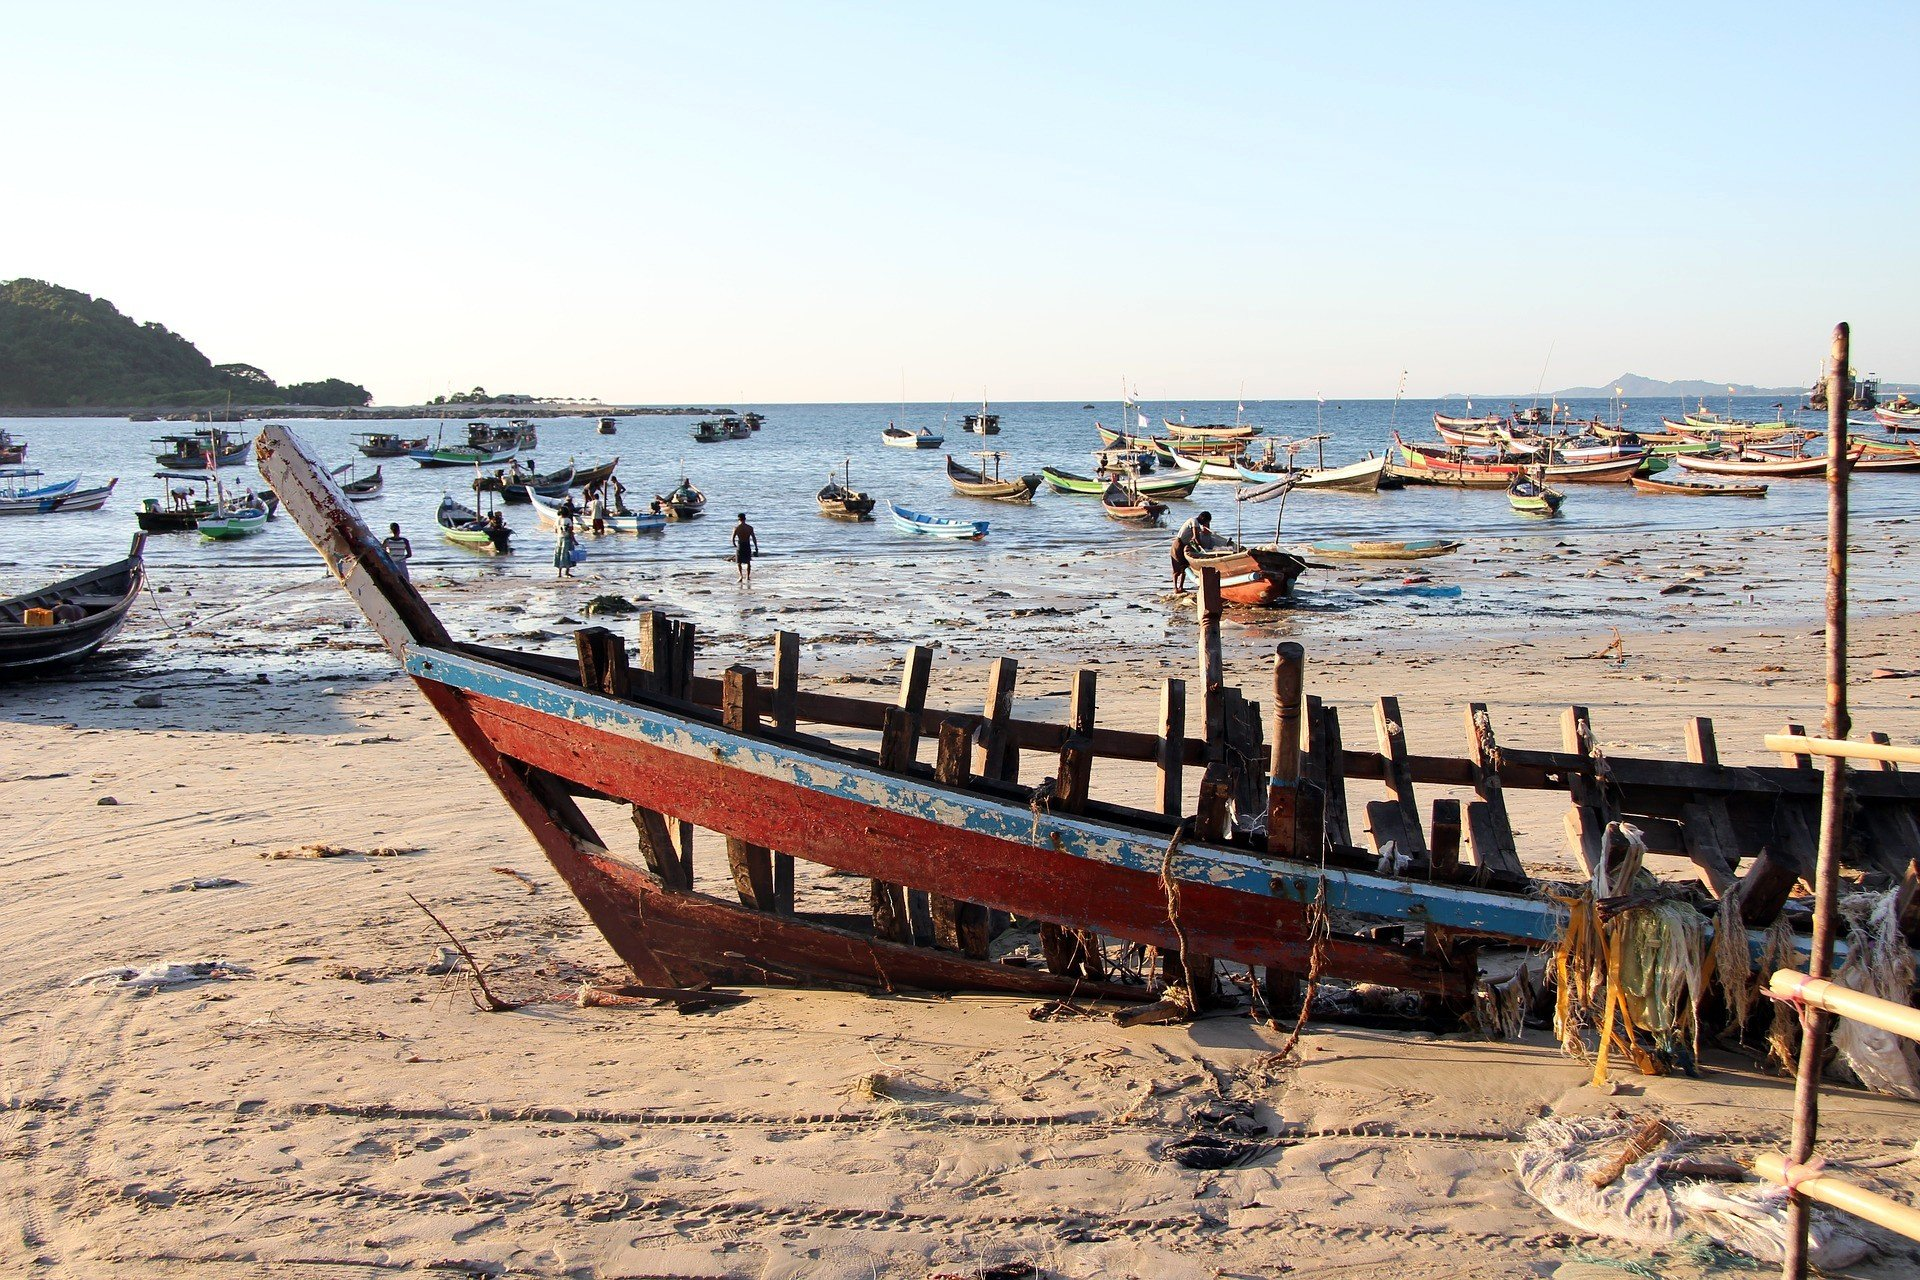 Dawei is close to the many beaches of the Tanintharyi Region